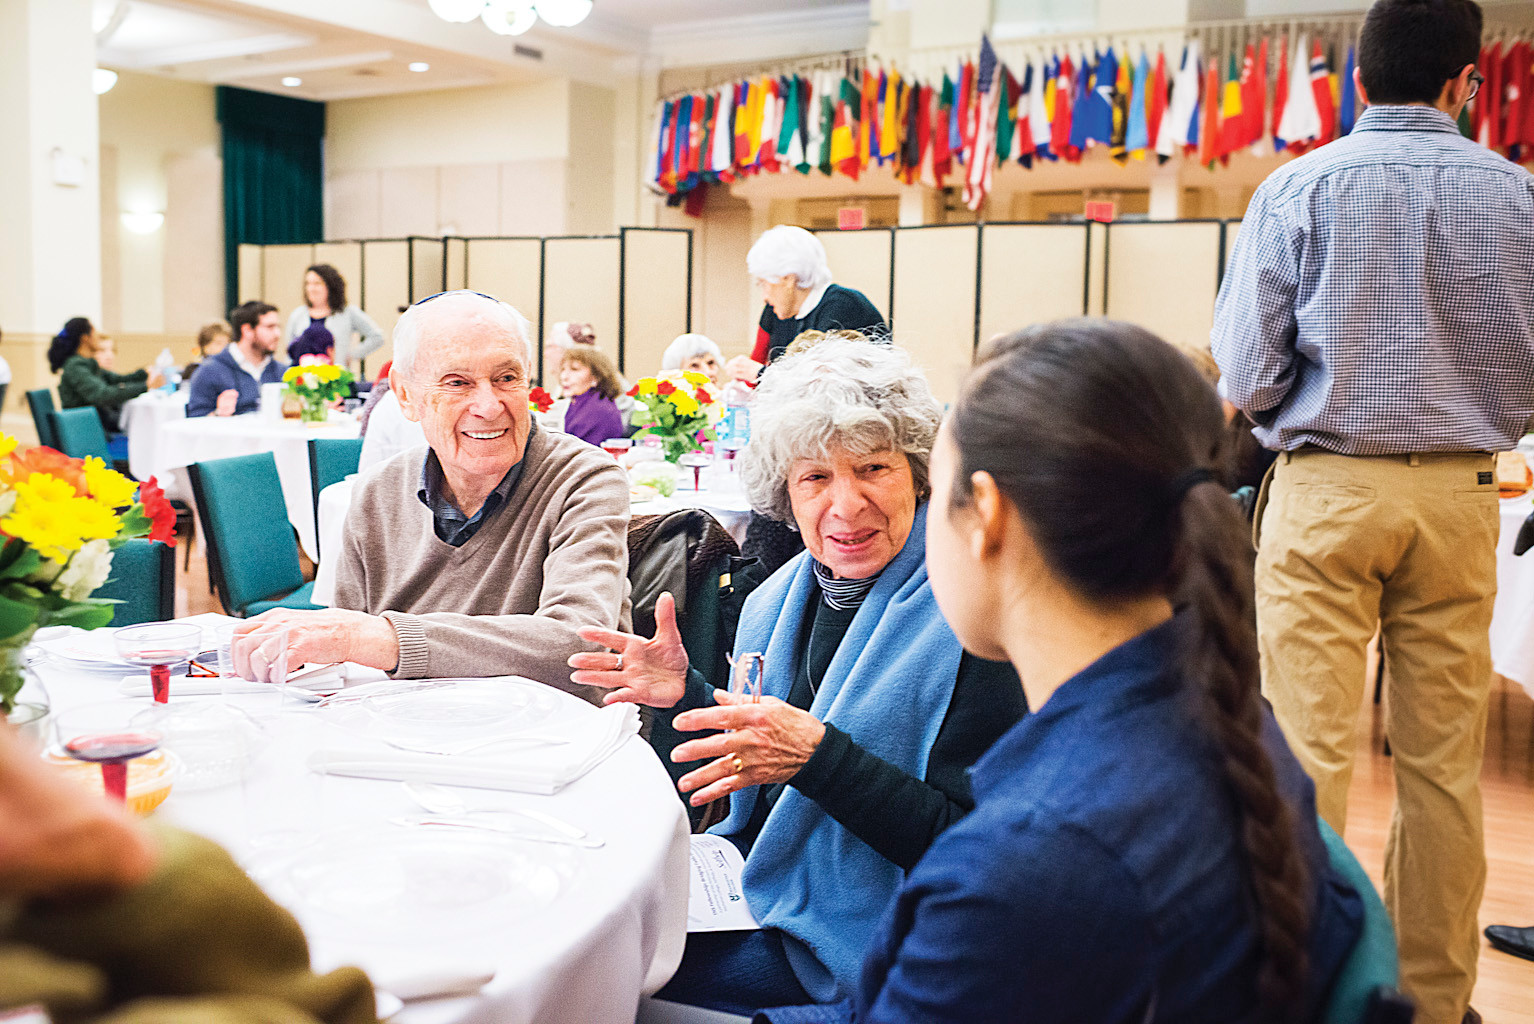 Riverdalian Faye Lieman, in the scarf, talks with students and fellow attendees at the Manhattan College seder celebration 'Bridging Faiths with Yeshiva Chovevei Torah' on Wednesday.